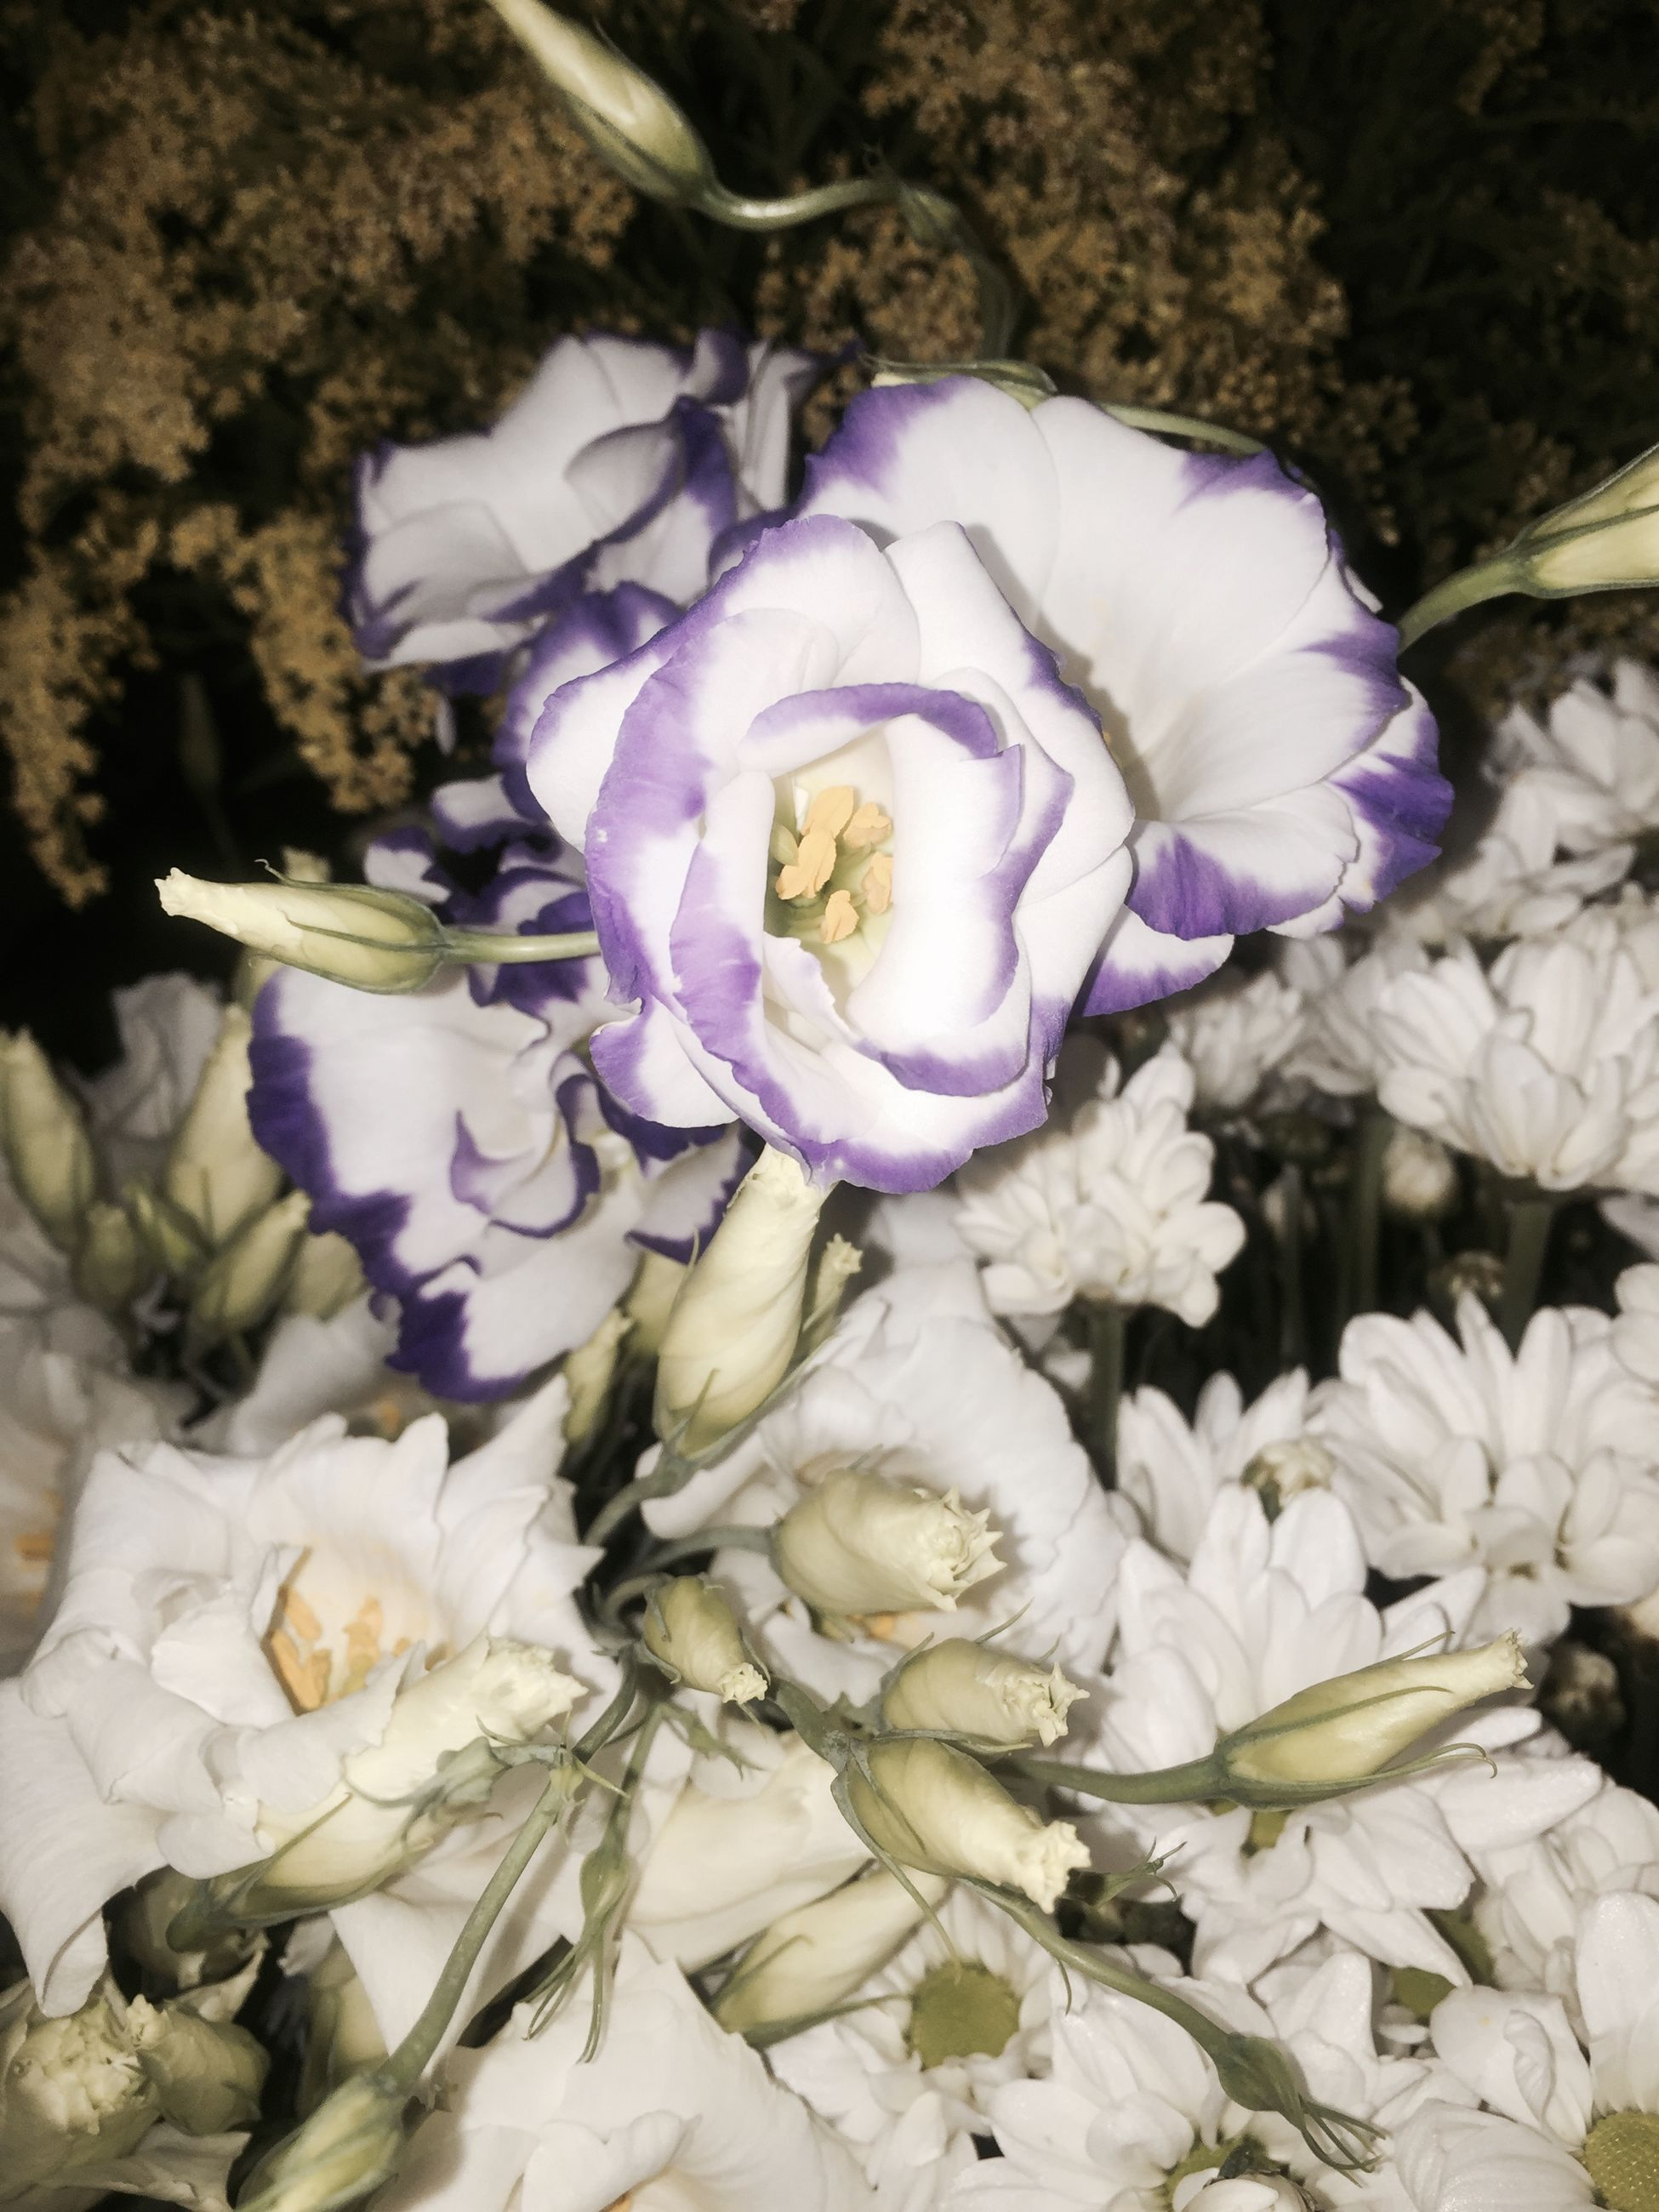 flower, petal, fragility, flower head, freshness, purple, close-up, nature, growth, beauty in nature, high angle view, blooming, plant, no people, white color, outdoors, day, in bloom, leaf, botany